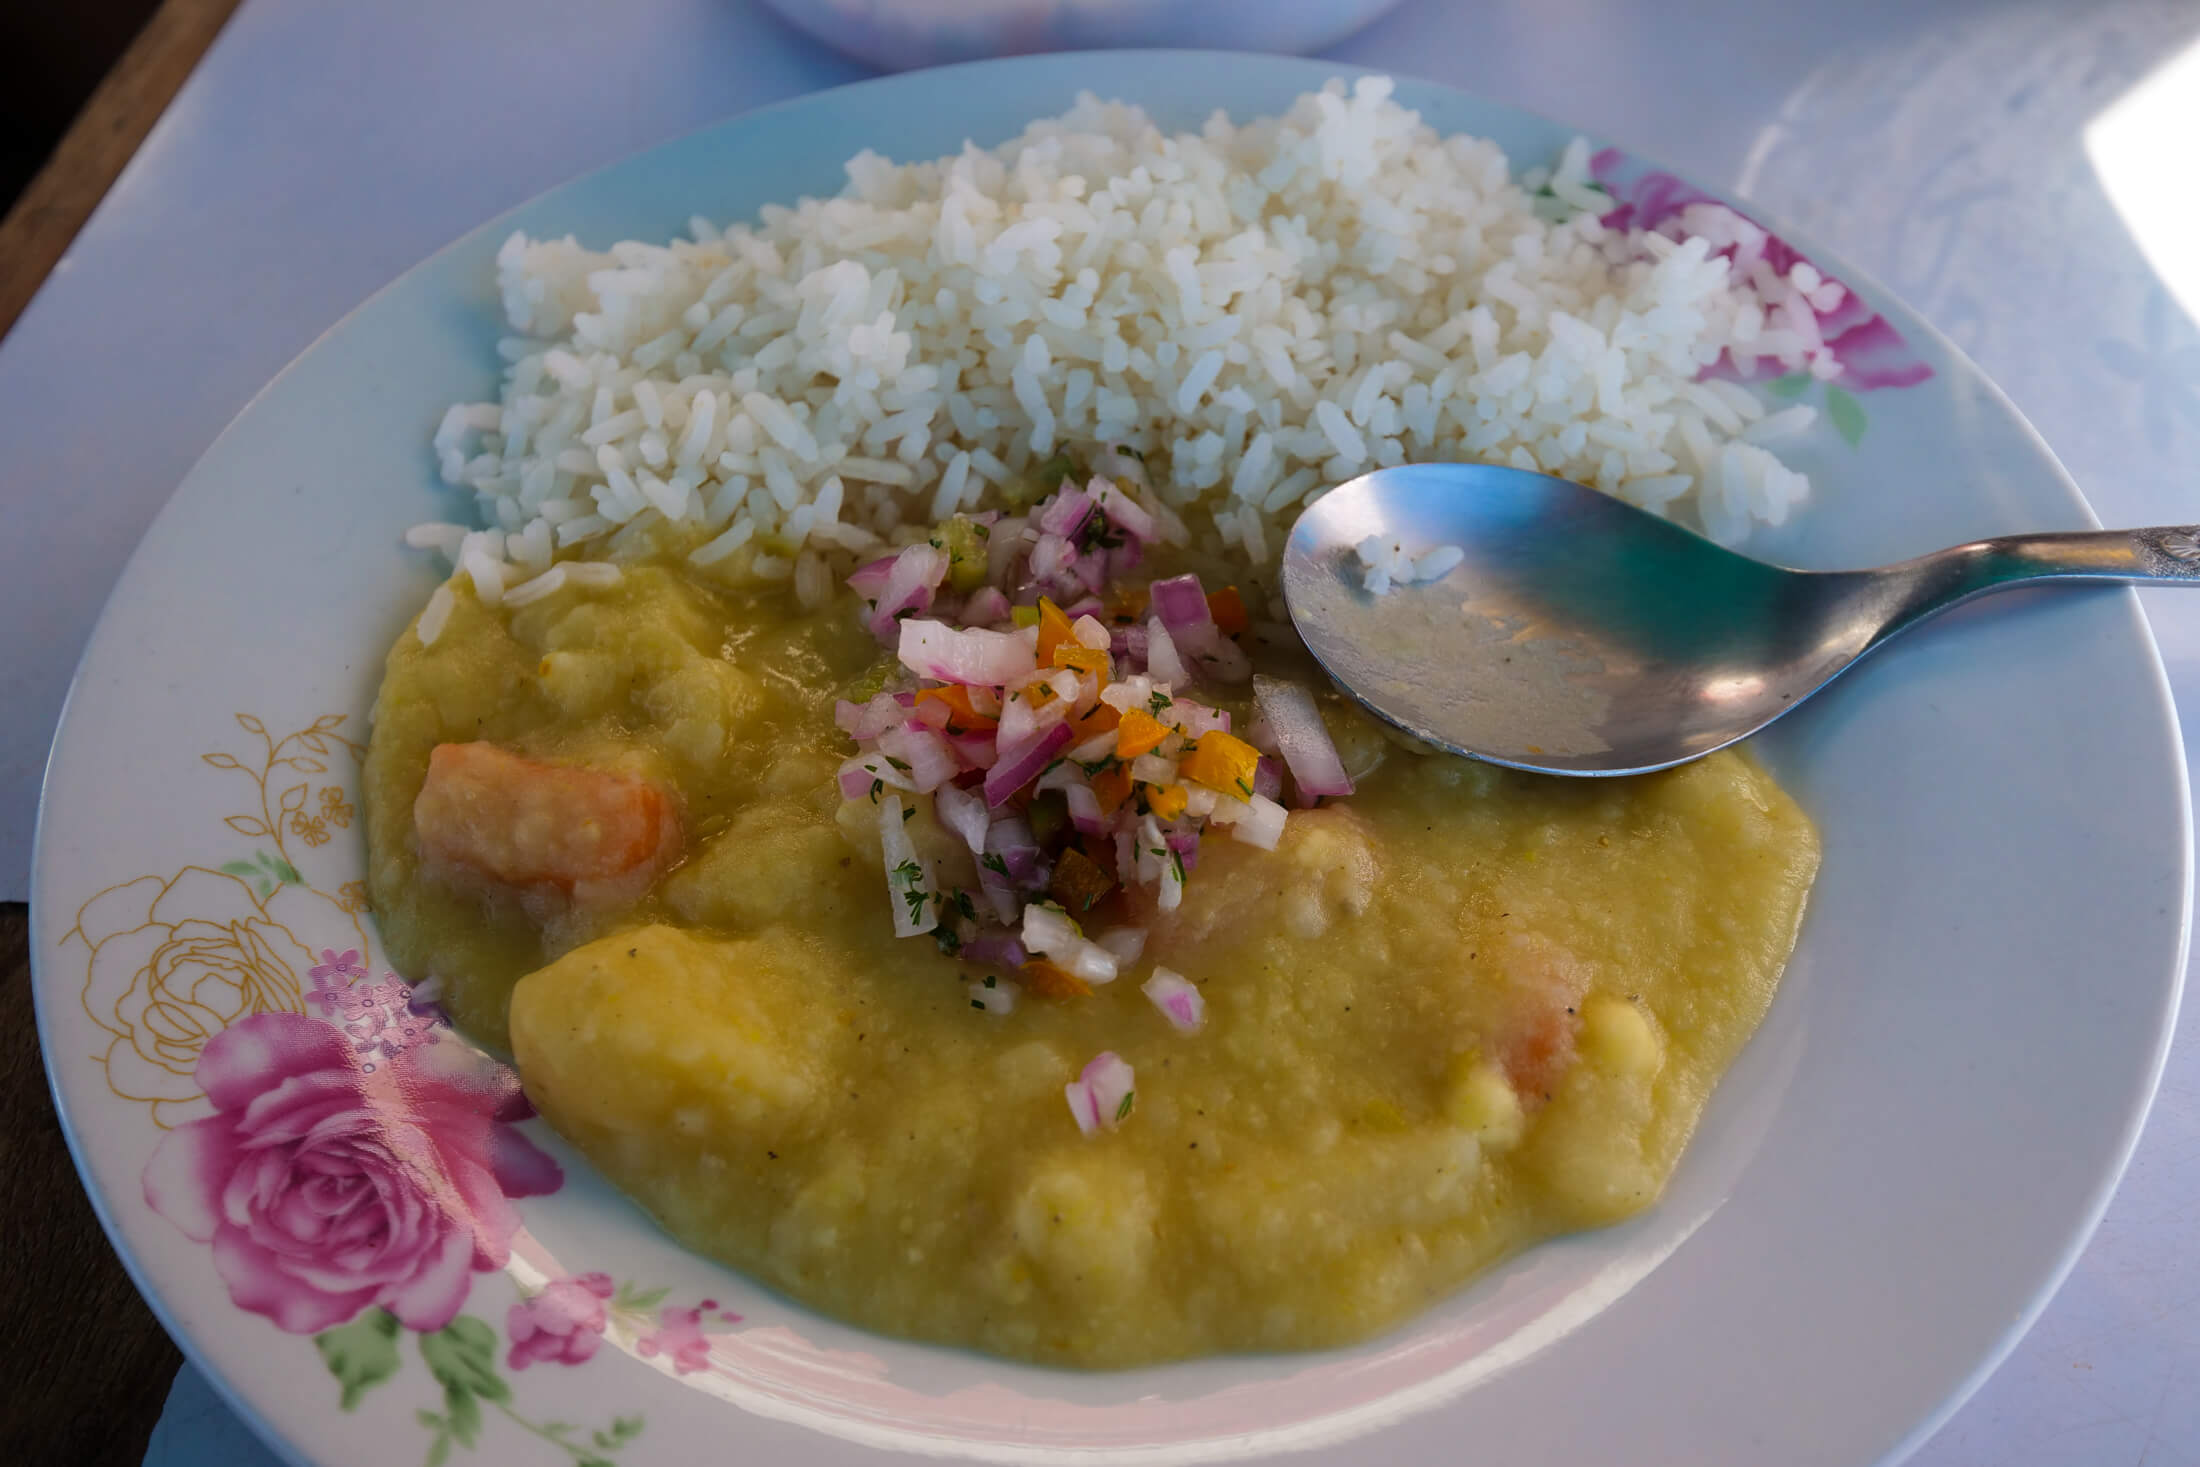 Kapchi de Habas is A hearty plate of cauliflower, carrots, and potatoes to go with white rice